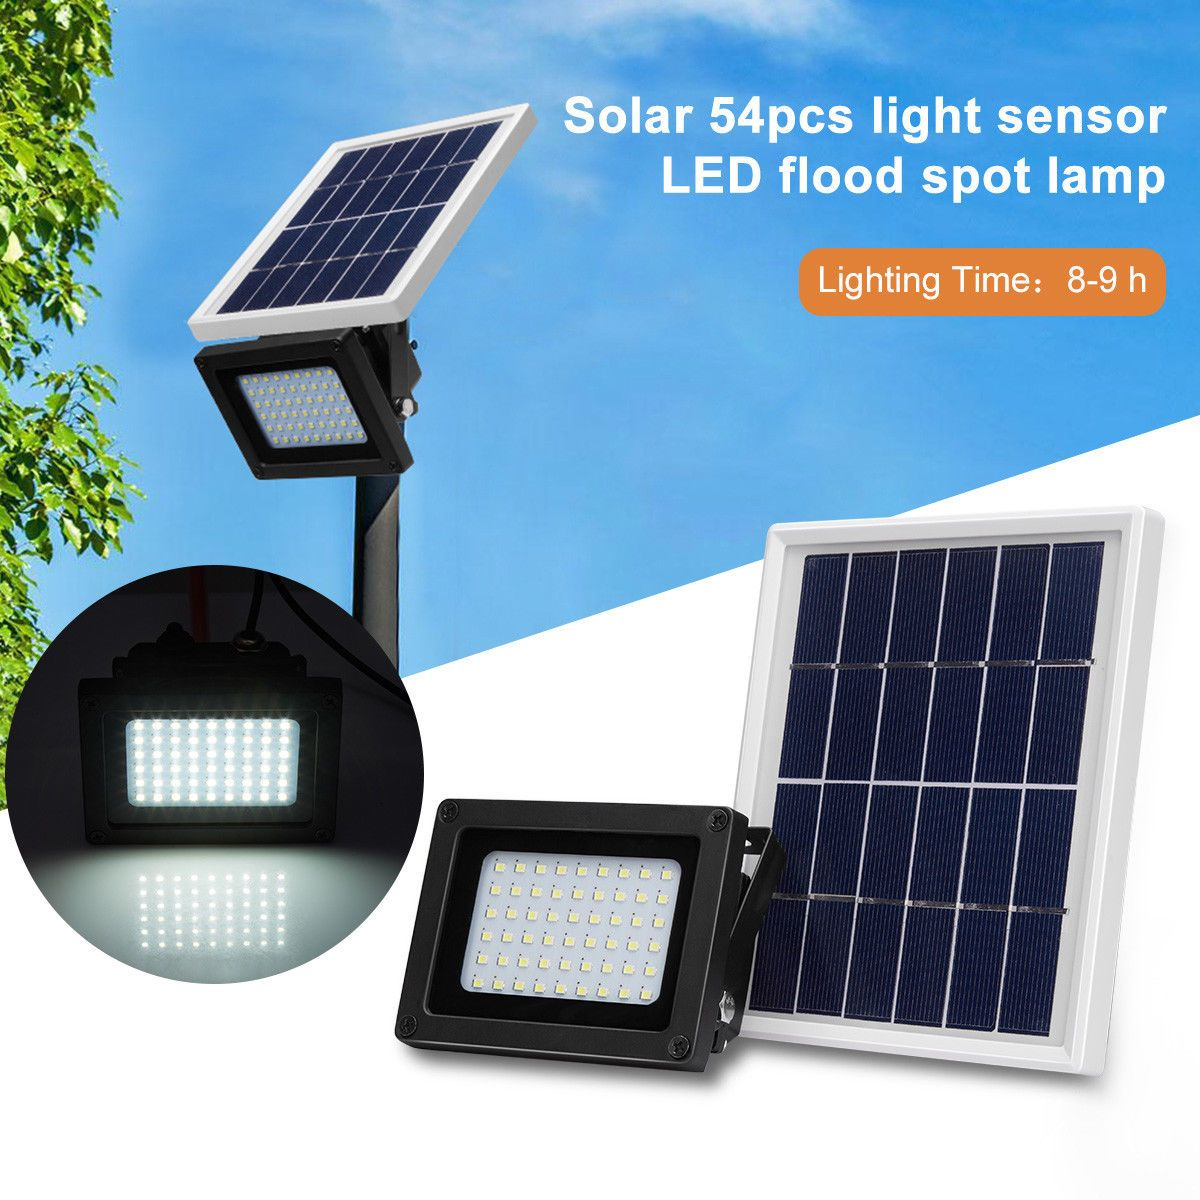 Wlite 10w Led Solar Flood Lights Outdoor Waterproof Security Lamp 6000k Cool White Intelligent Wall Lights 220 Solar Flood Lights Flood Lights Outdoor Lighting